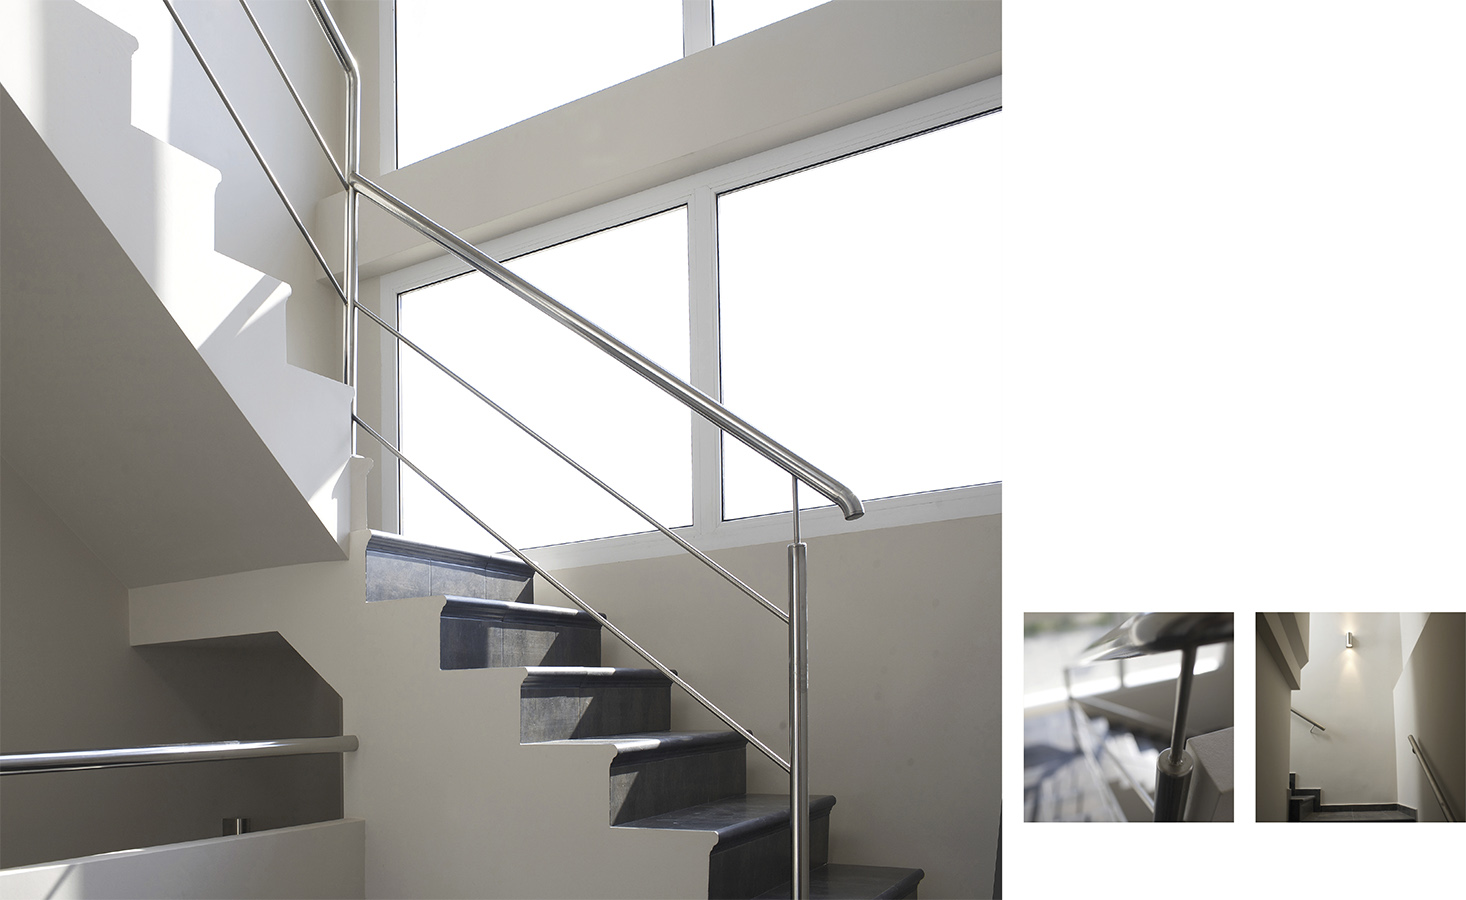 Villa Bussot Ceramic stairs from luxury house, new building, Alicante, Bussot